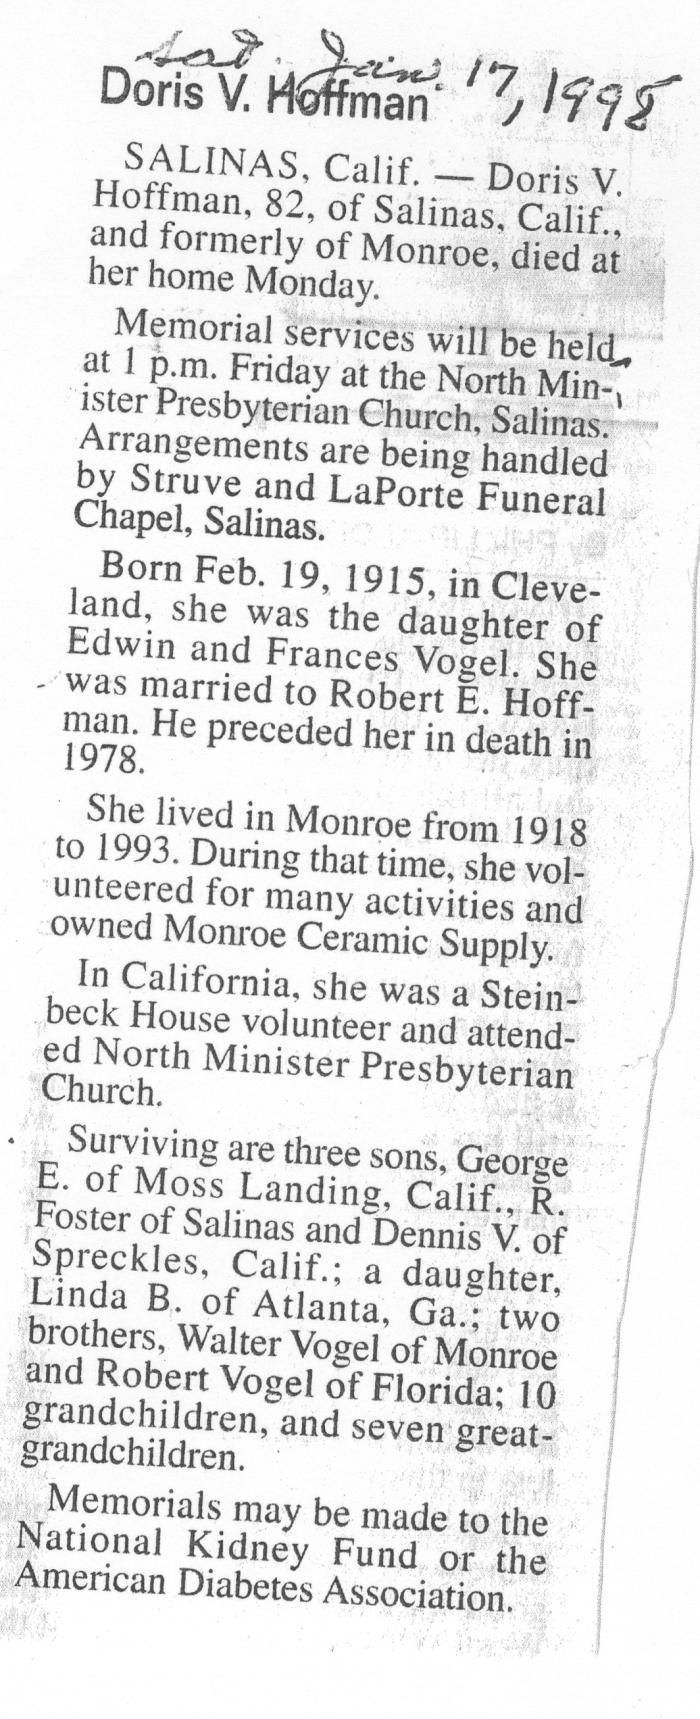 Obituary of Doris V. Hoffman born Feb.19, 1915 in Cleveland, Ohio. Resided in Monroe, Michigan and Salinas, California